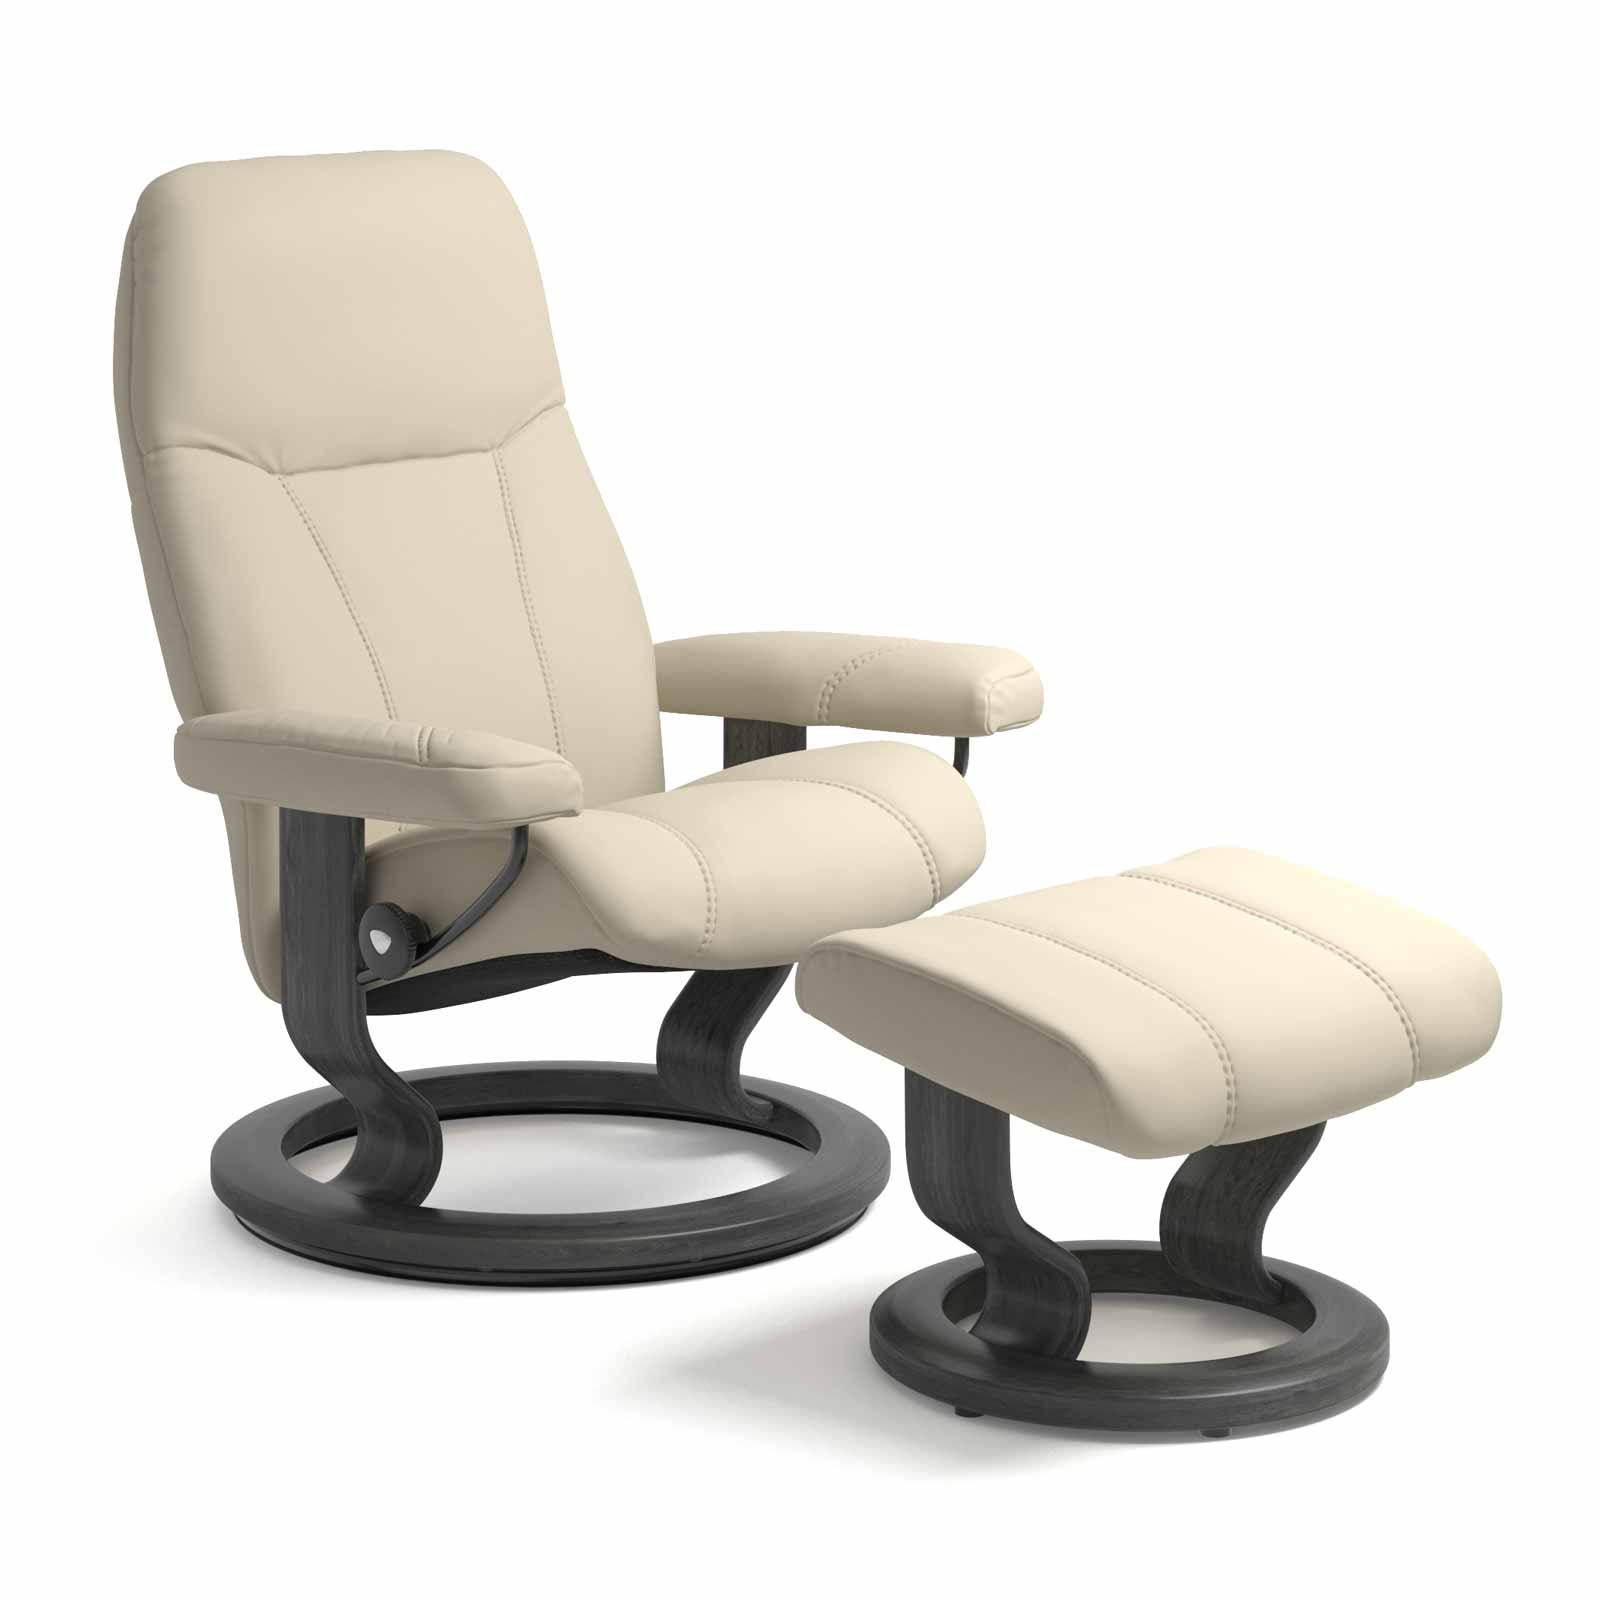 Stressless Consul M Sessel Und Hocker Stressless Sessel Consul M Batick Cream Mit Hocker